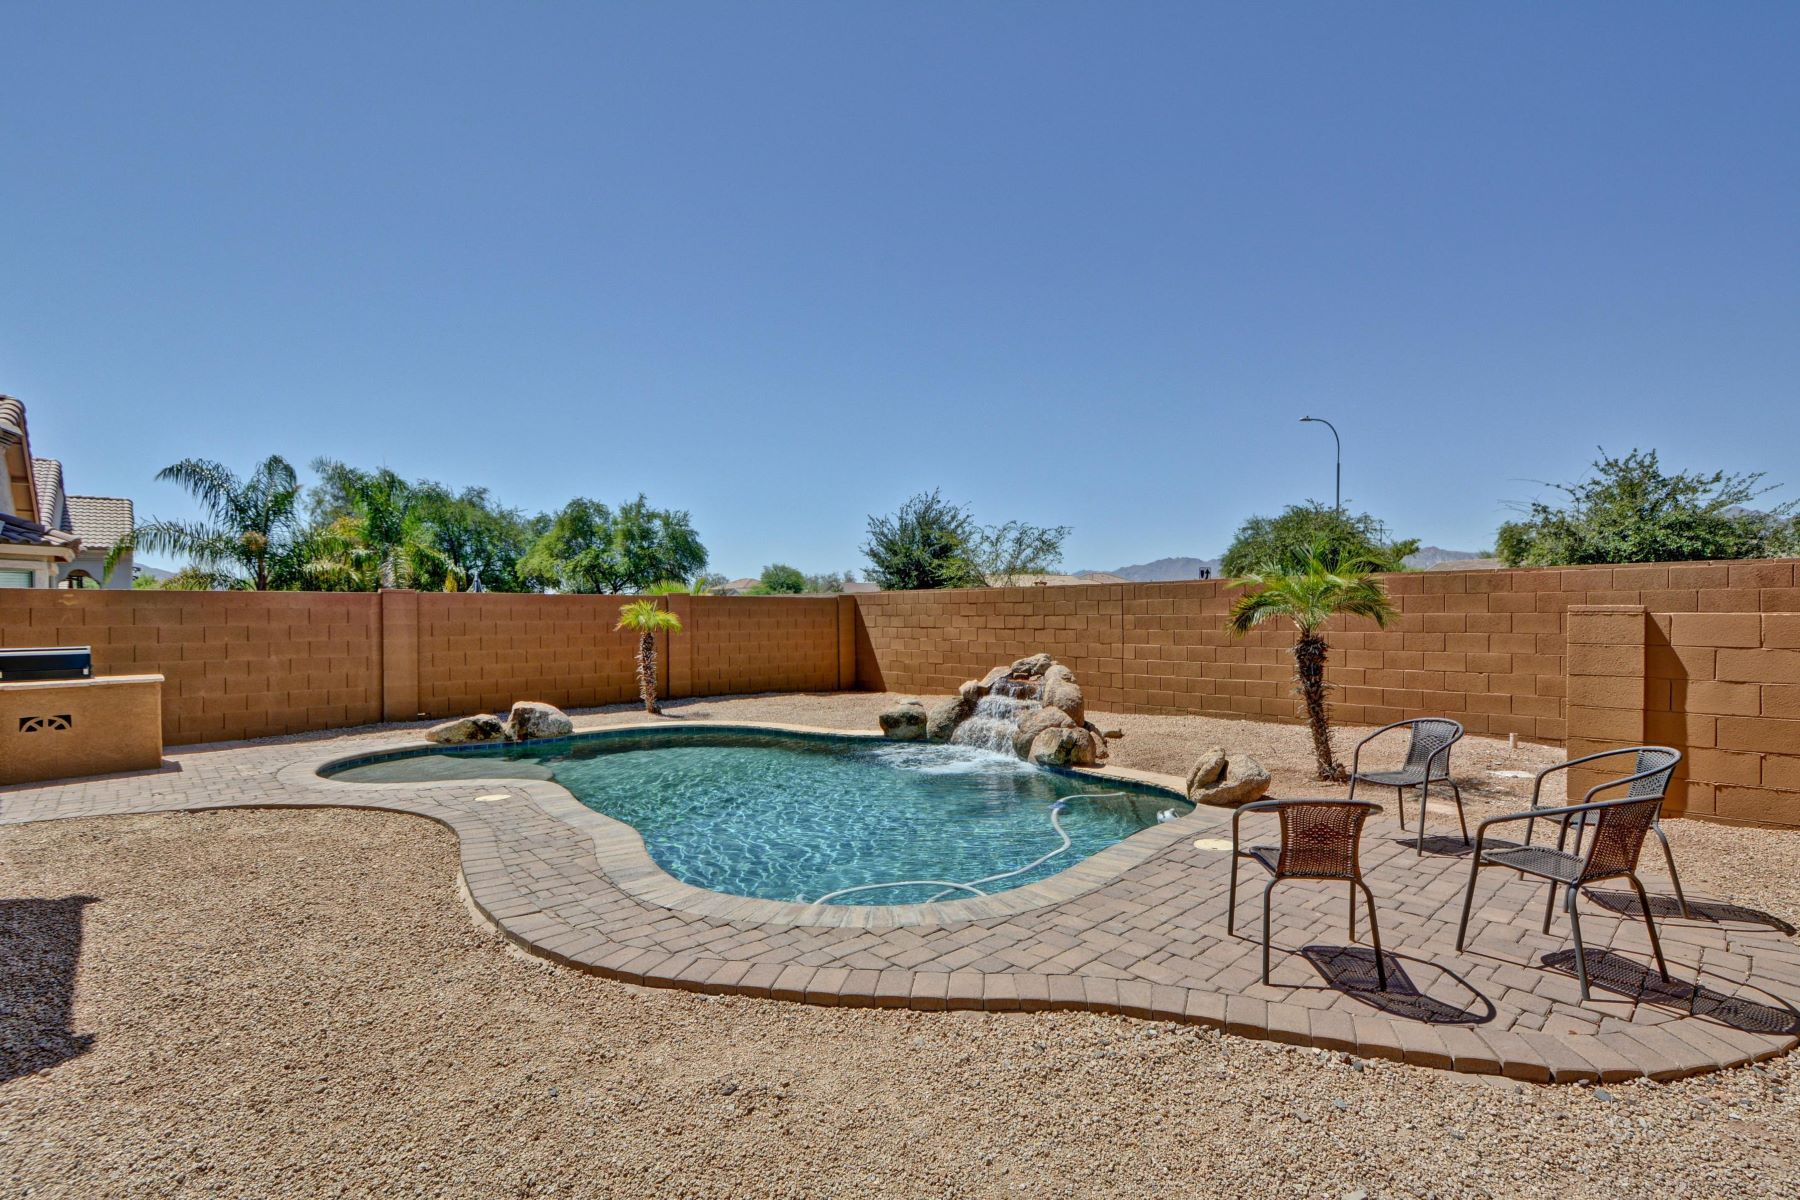 Single Family Homes for Sale at Laveen Meadows 7219 W BEVERLY RD Laveen, Arizona 85339 United States